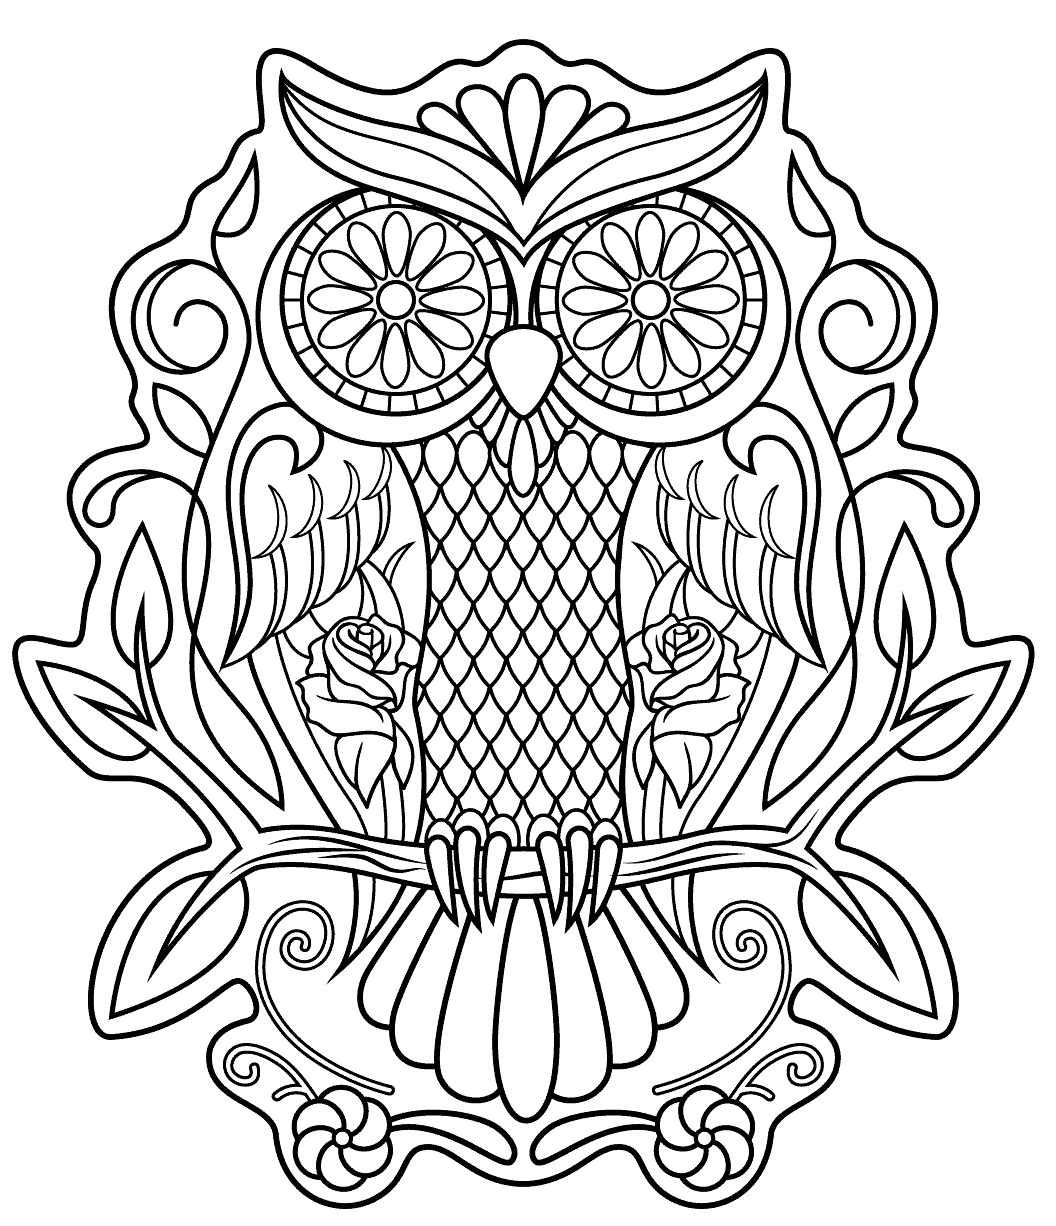 skull color free printable sugar skull coloring pages for adults skull color